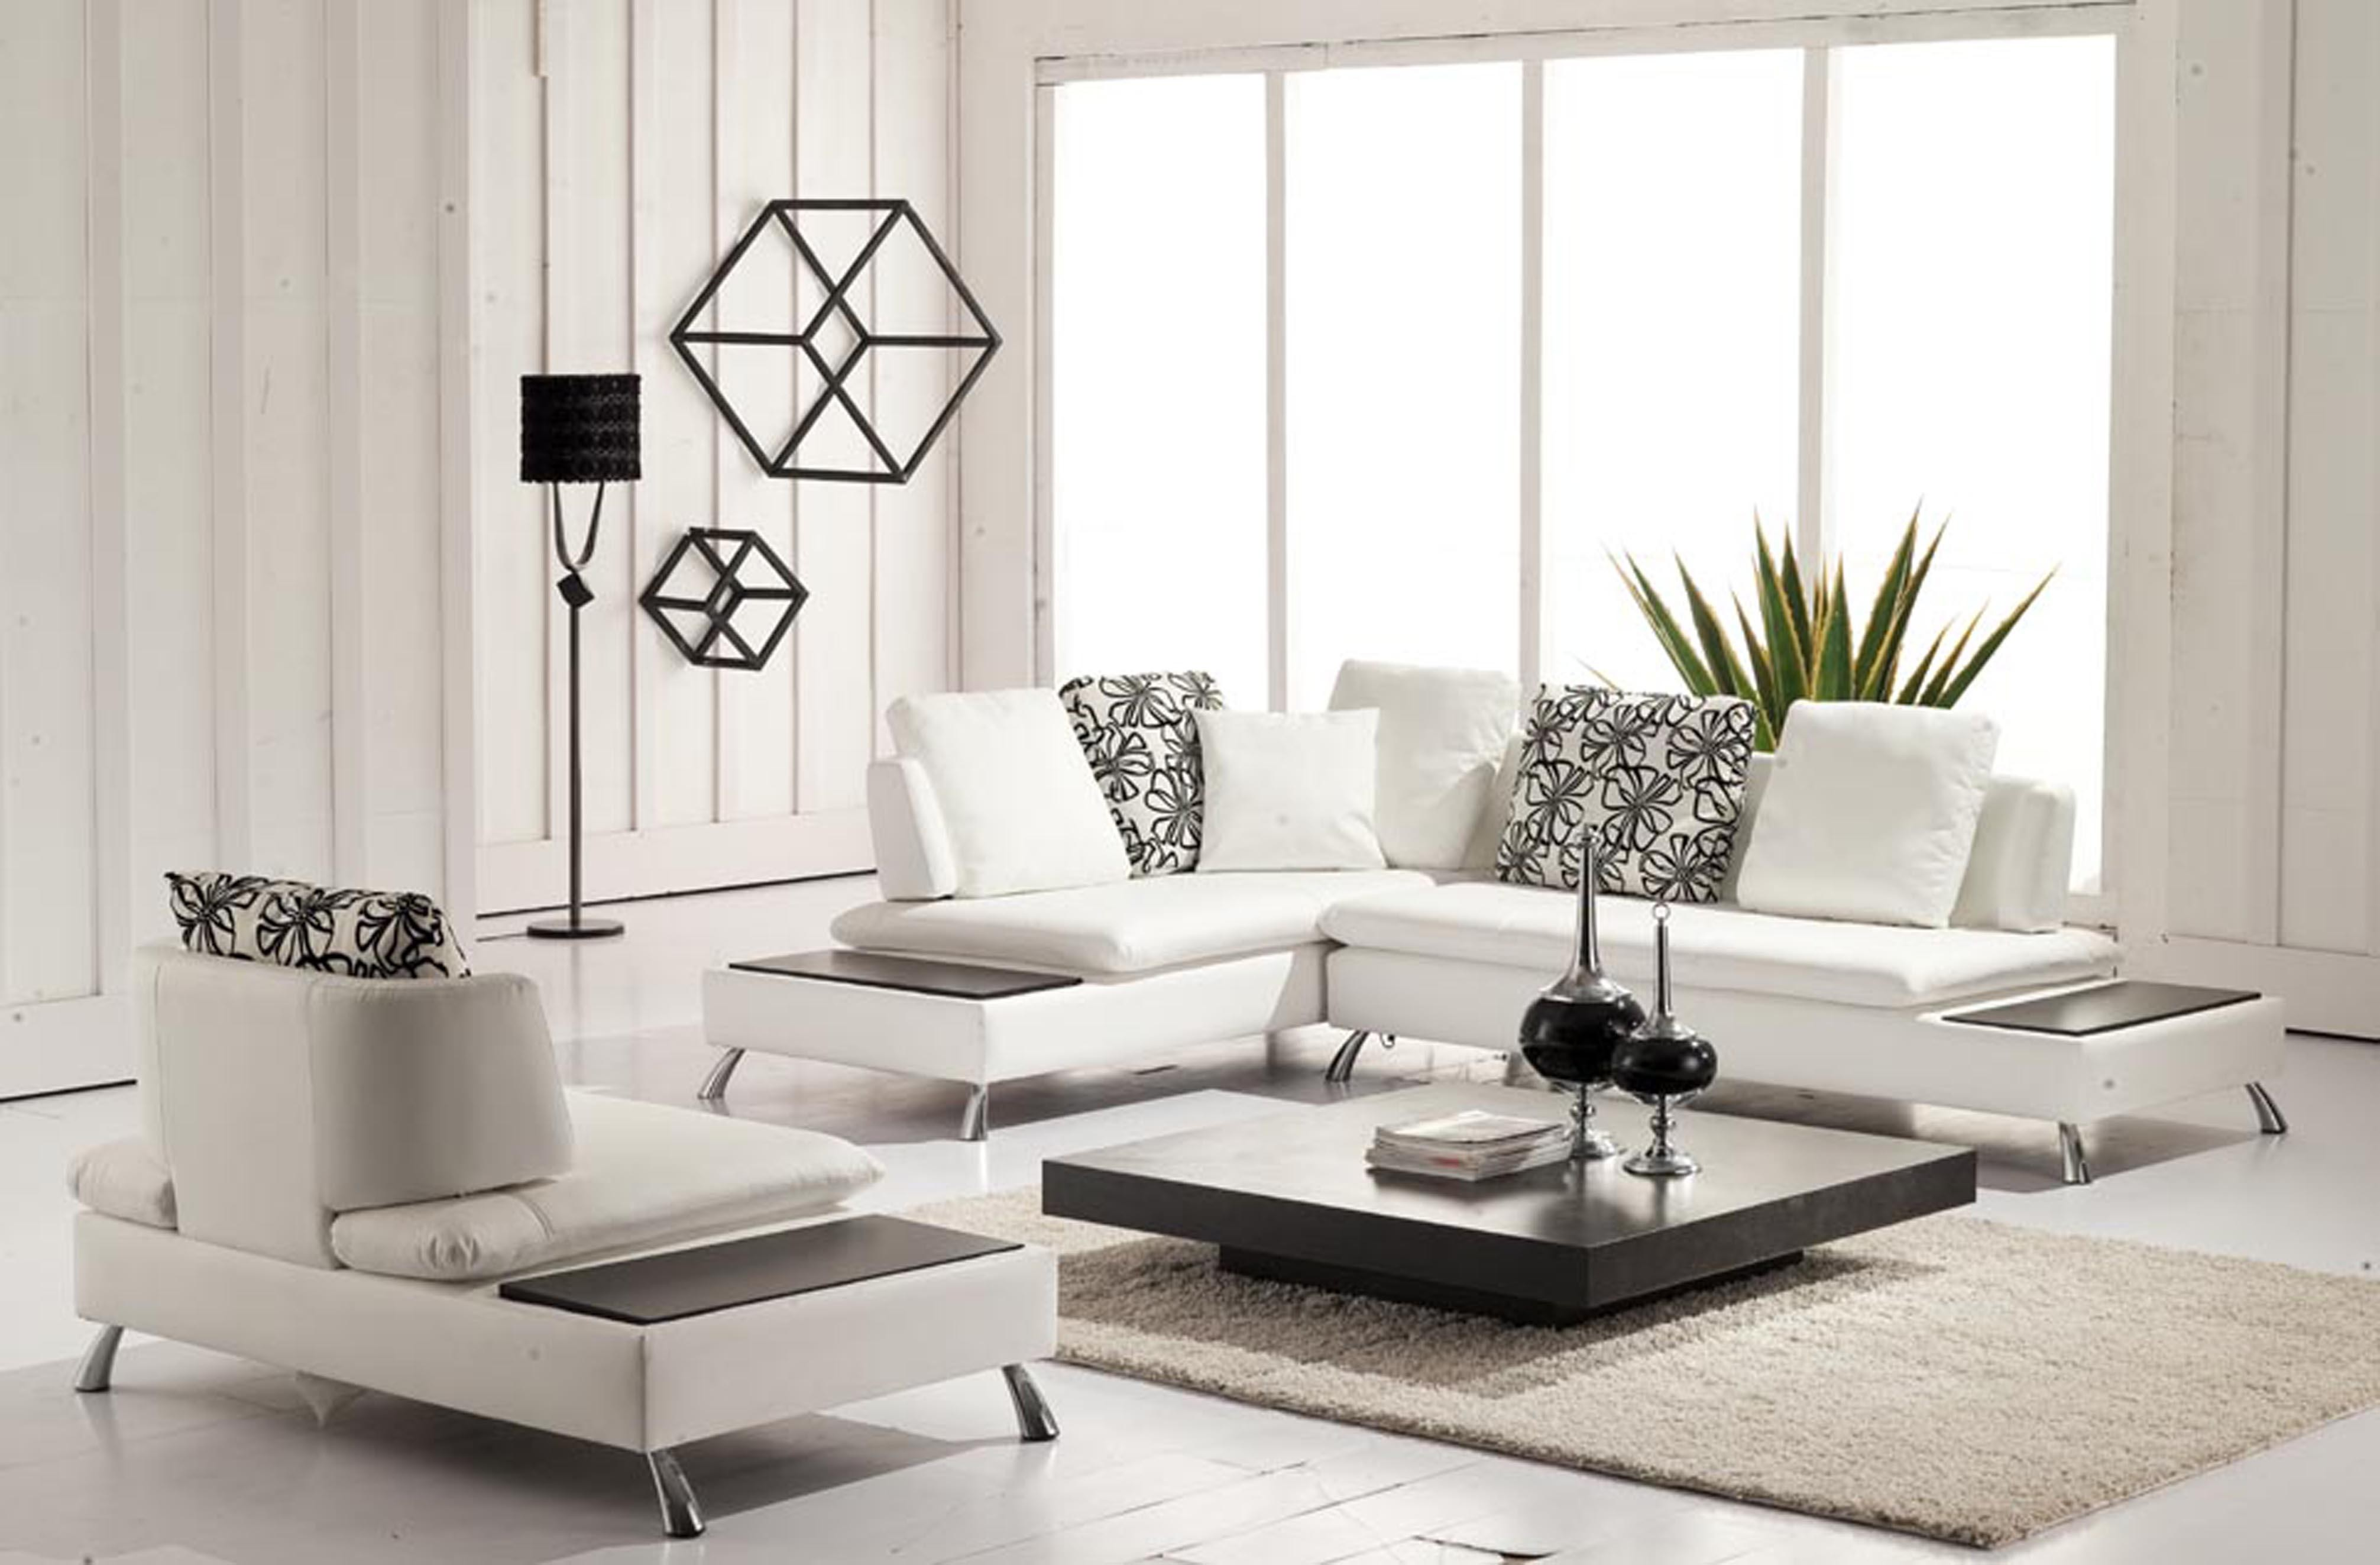 Save Floor Space with Multipurpose Modern Furniture - LA Furniture Blog